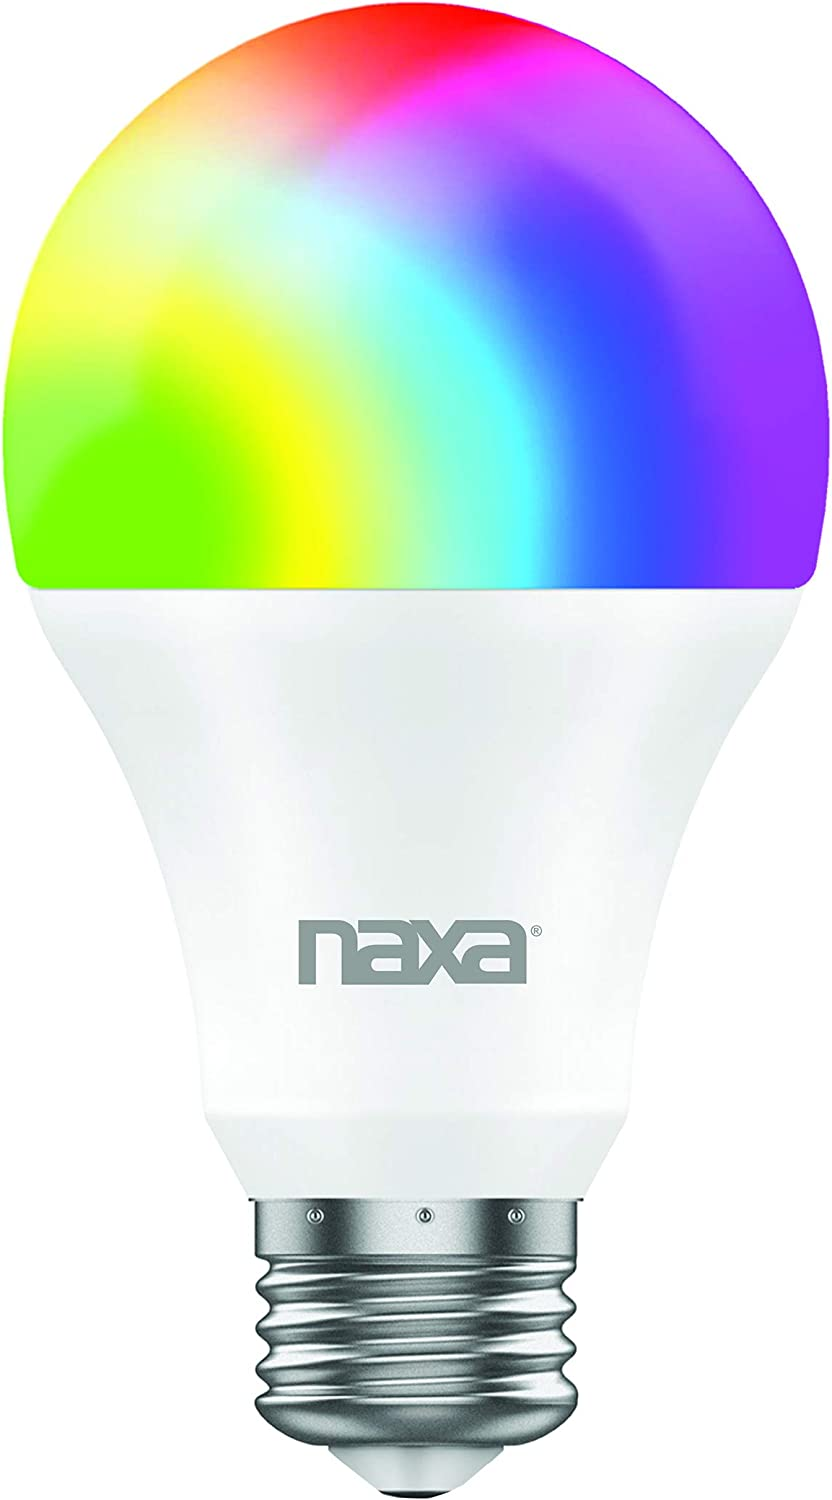 Alexa and Ifttt Google Home Compatible with Smart Life NAXA Electronics Nsh-2000 Wi-Fi Smart Bulb